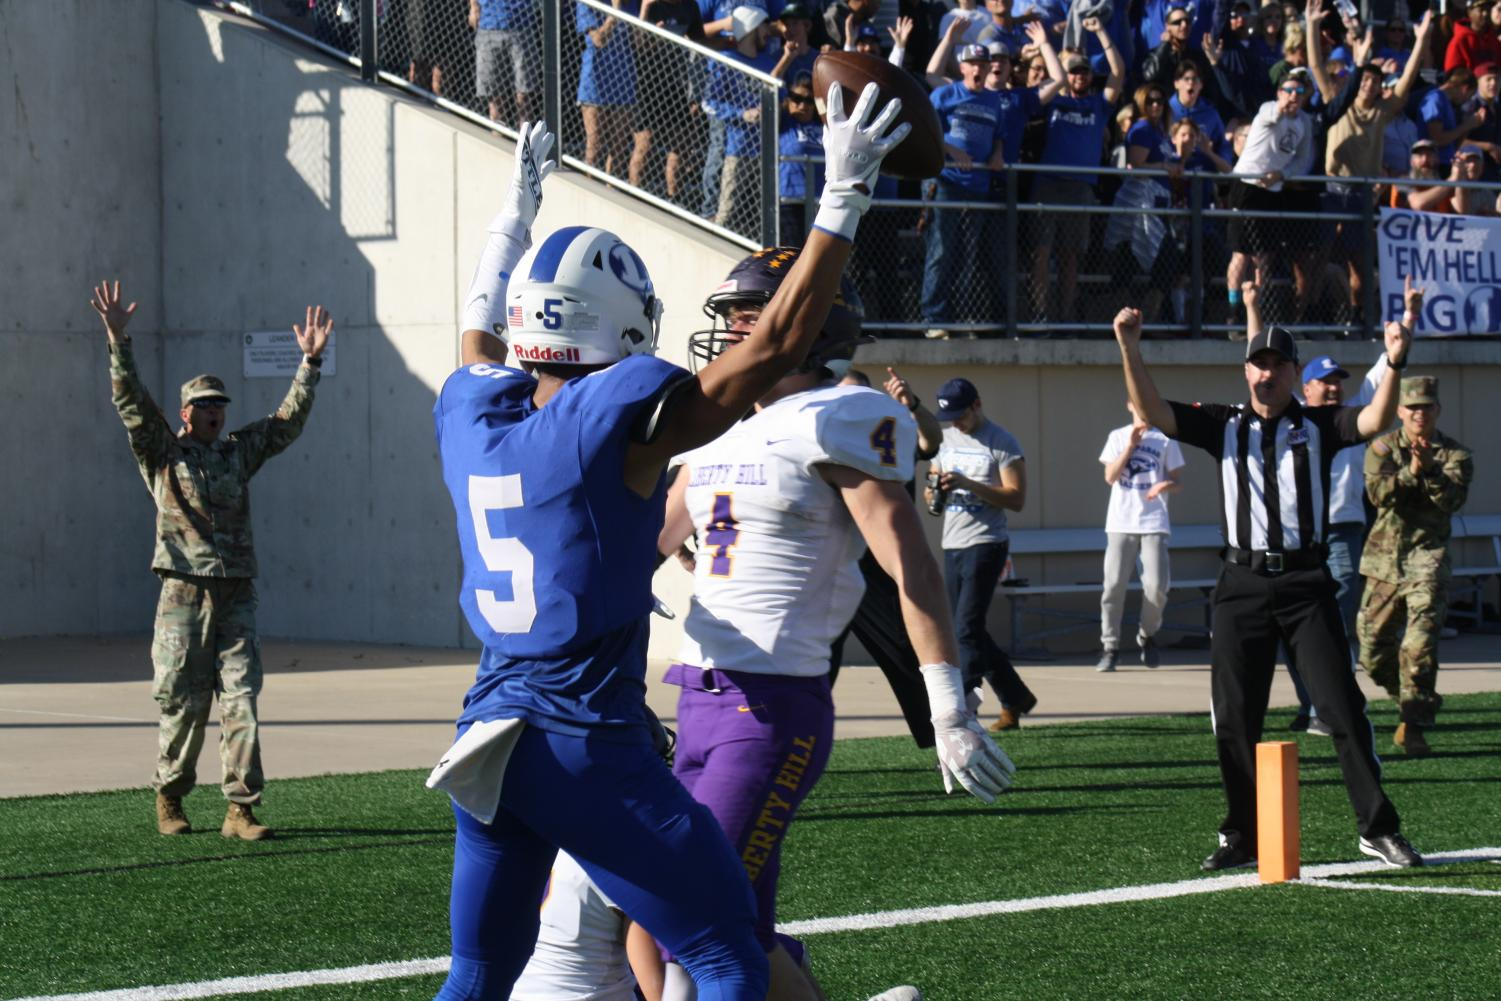 Senior Jaylon Porter and Badger football fans celebrate a touchdown against the Liberty Hill Panthers on Dec. 7.